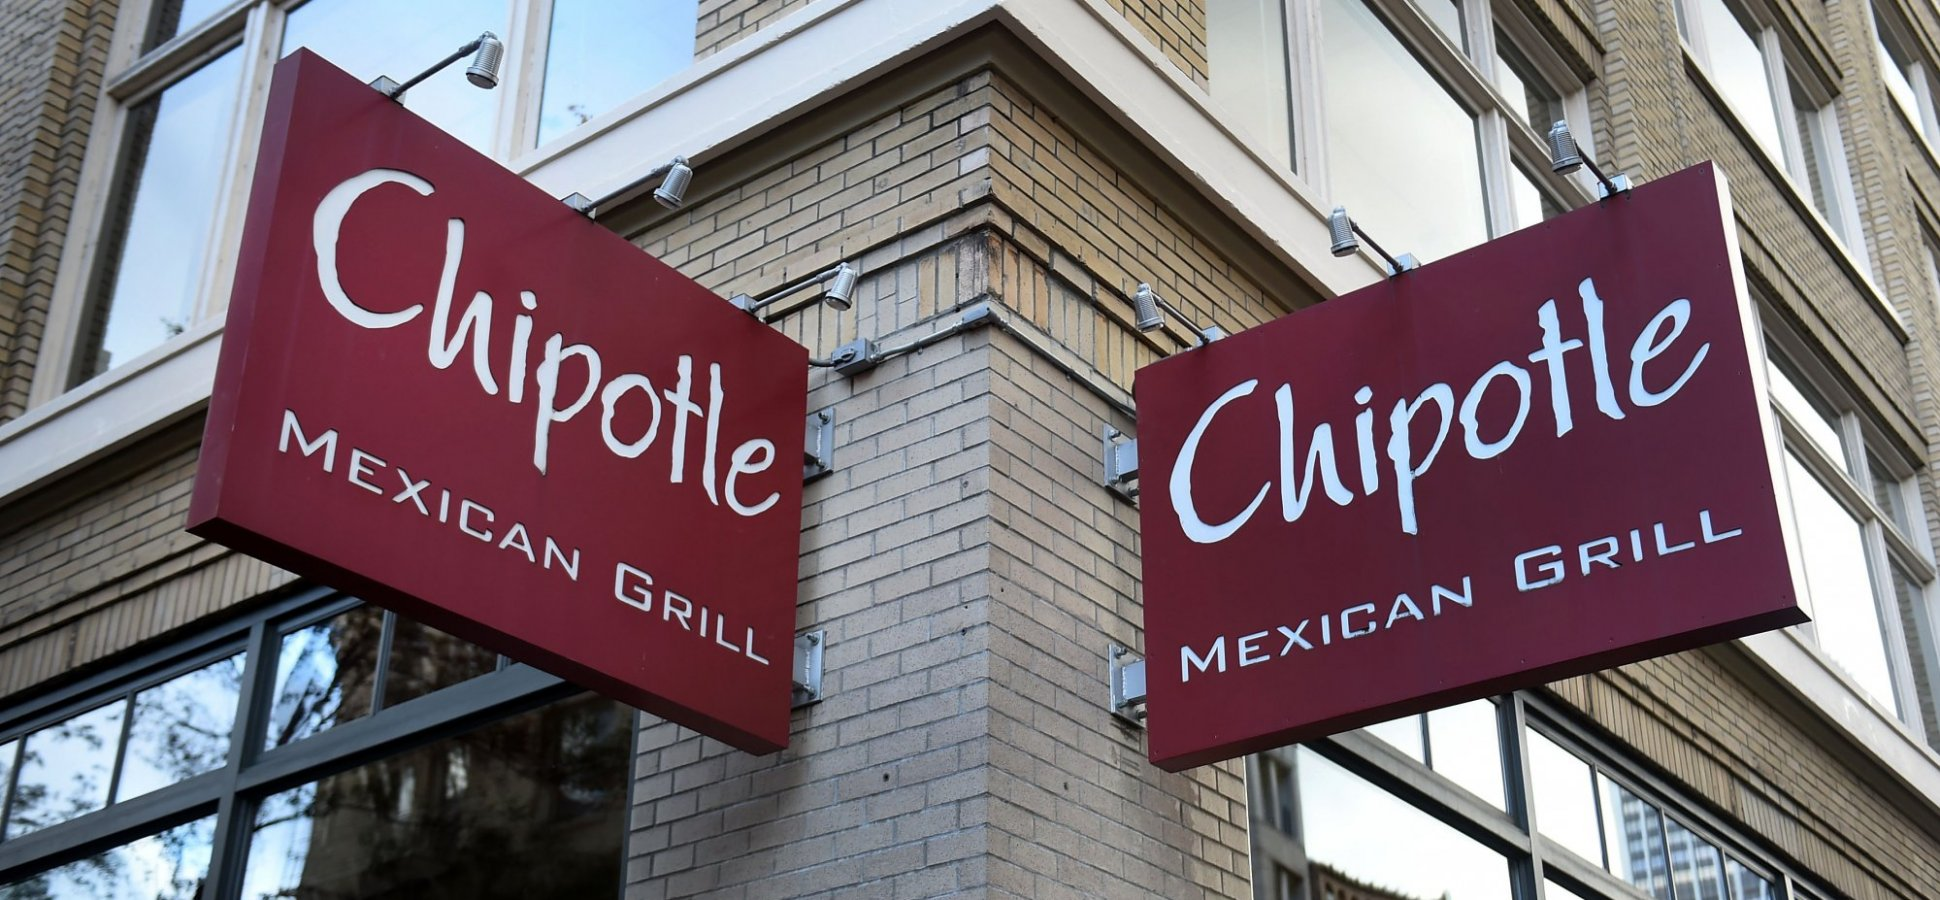 Chipotle Fired This 'Valued Employee' and Offered Her $1,000